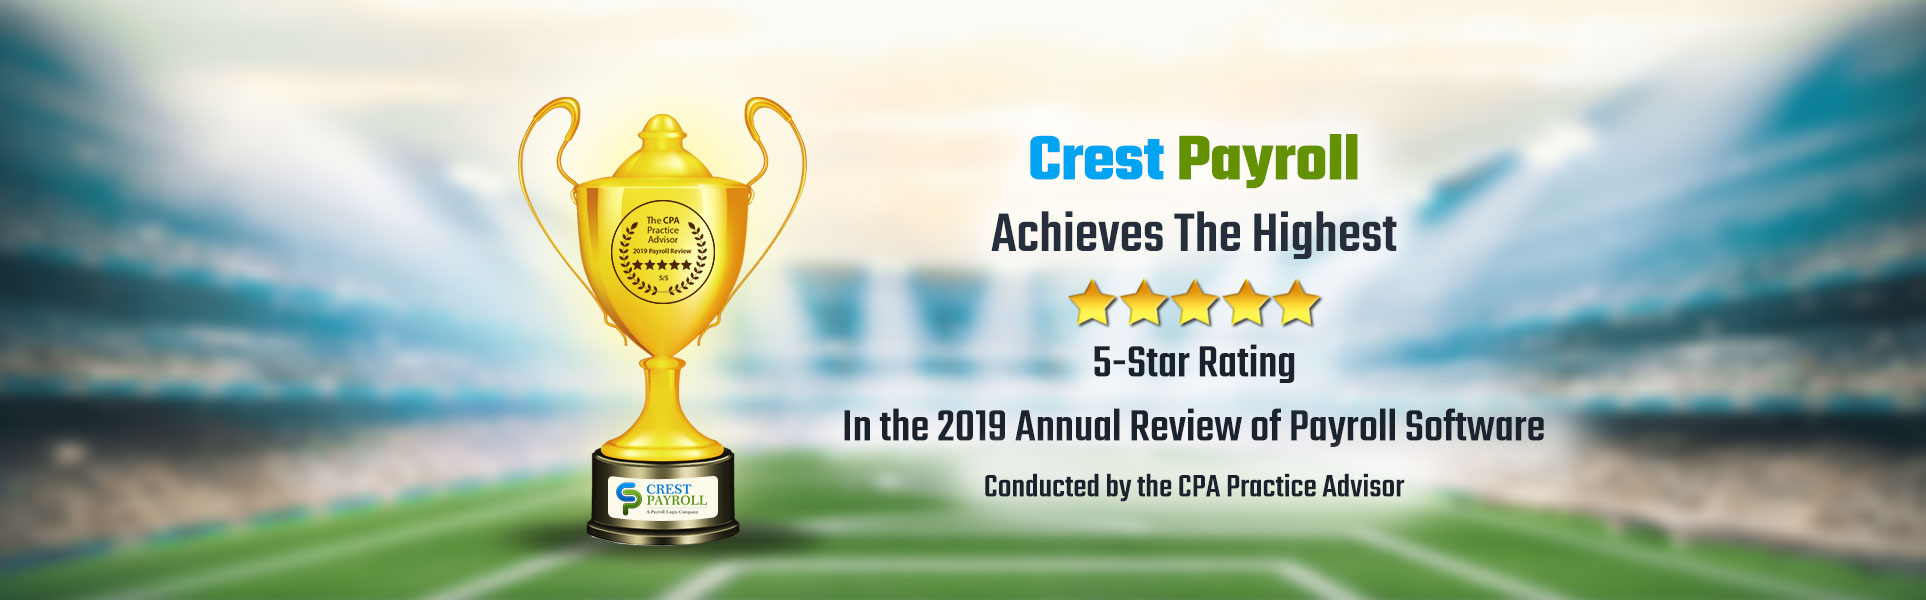 Crest Payroll Achieves The Highest 5-Star Rating